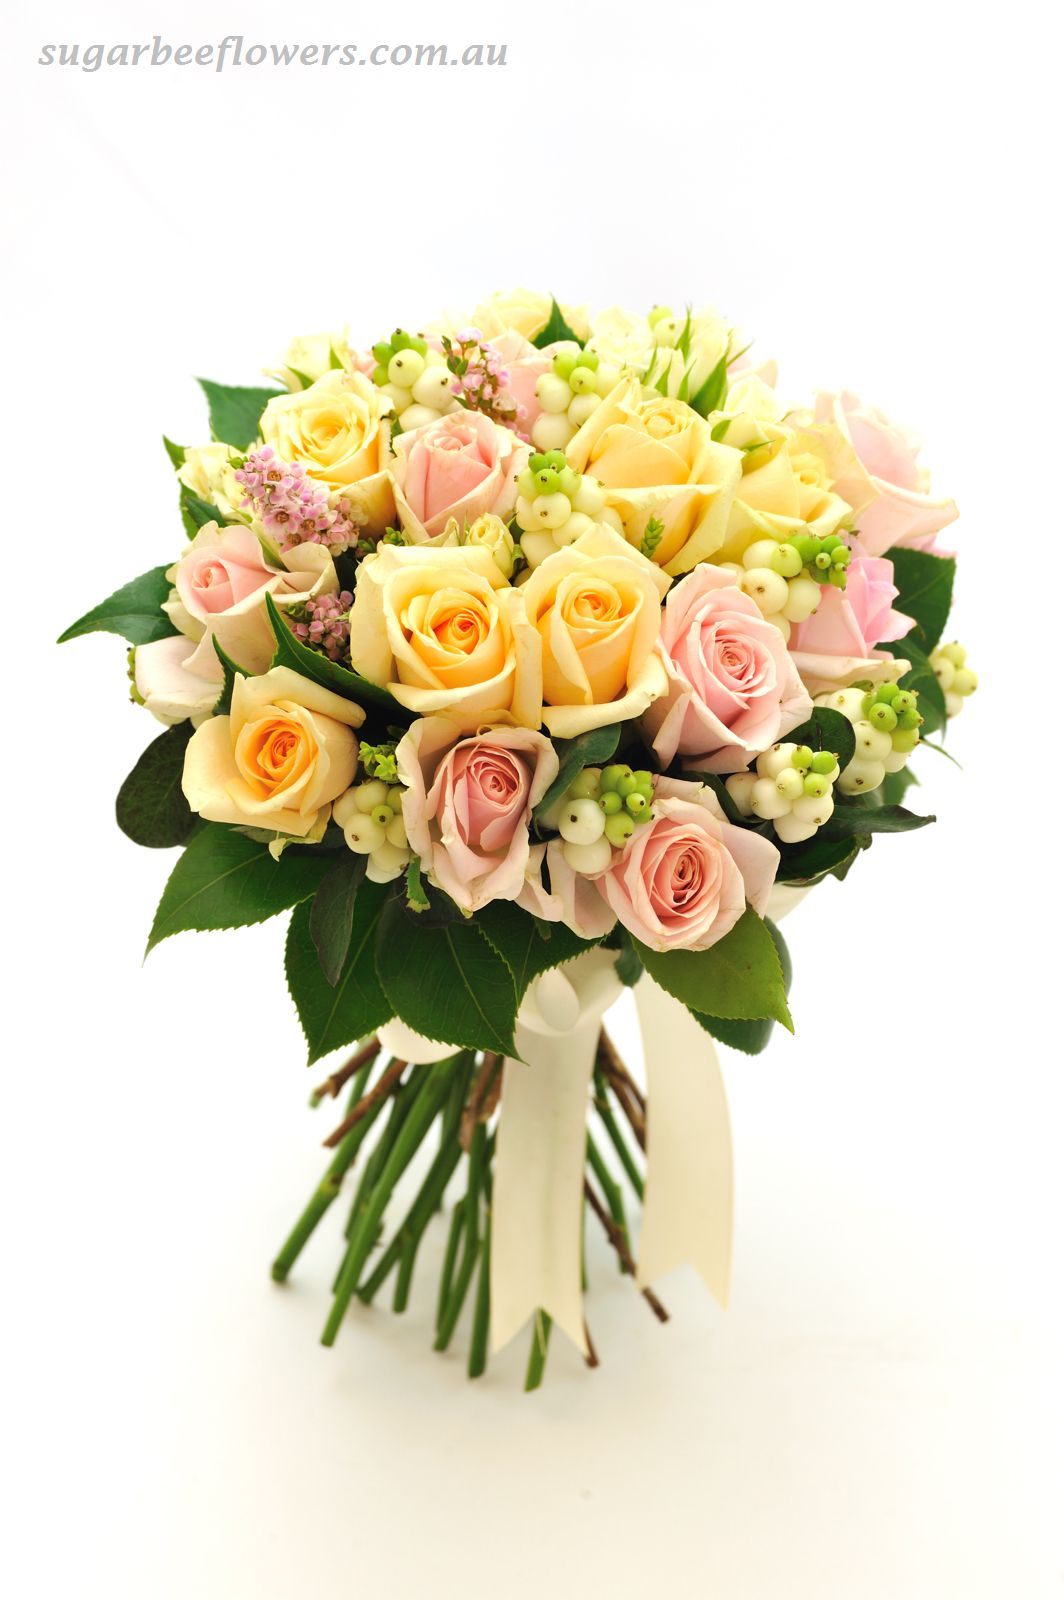 Sugar bee flowers mixed garden bouquet rose bouquet for Images of bouquets of roses